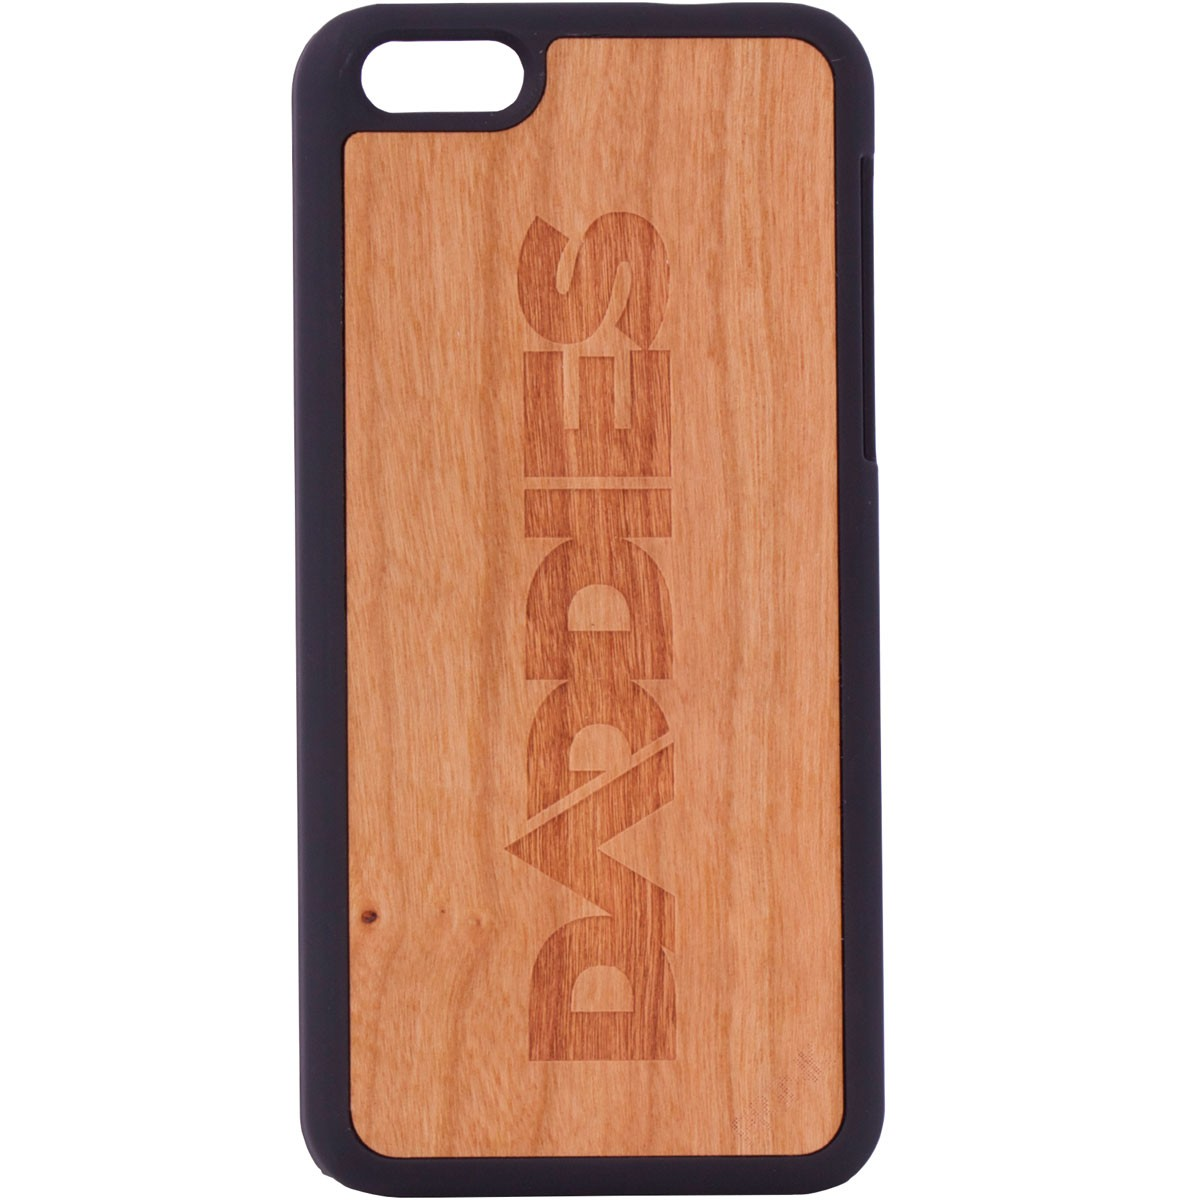 Daddies Board Shop iPhone 5c Hard Case - Cherry